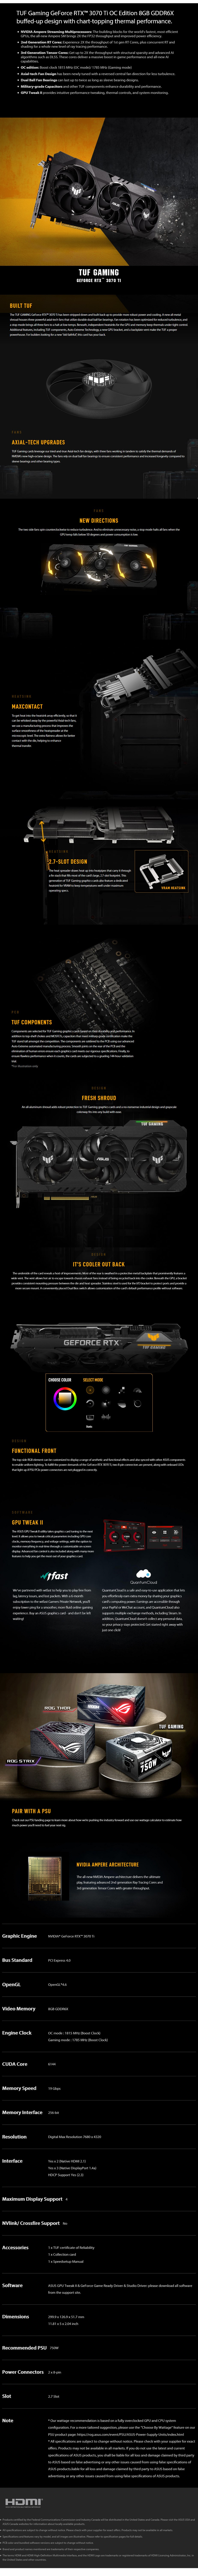 ASUS GeForce RTX 3070 Ti TUF Gaming OC 8GB Video Card - Desktop Overview 1